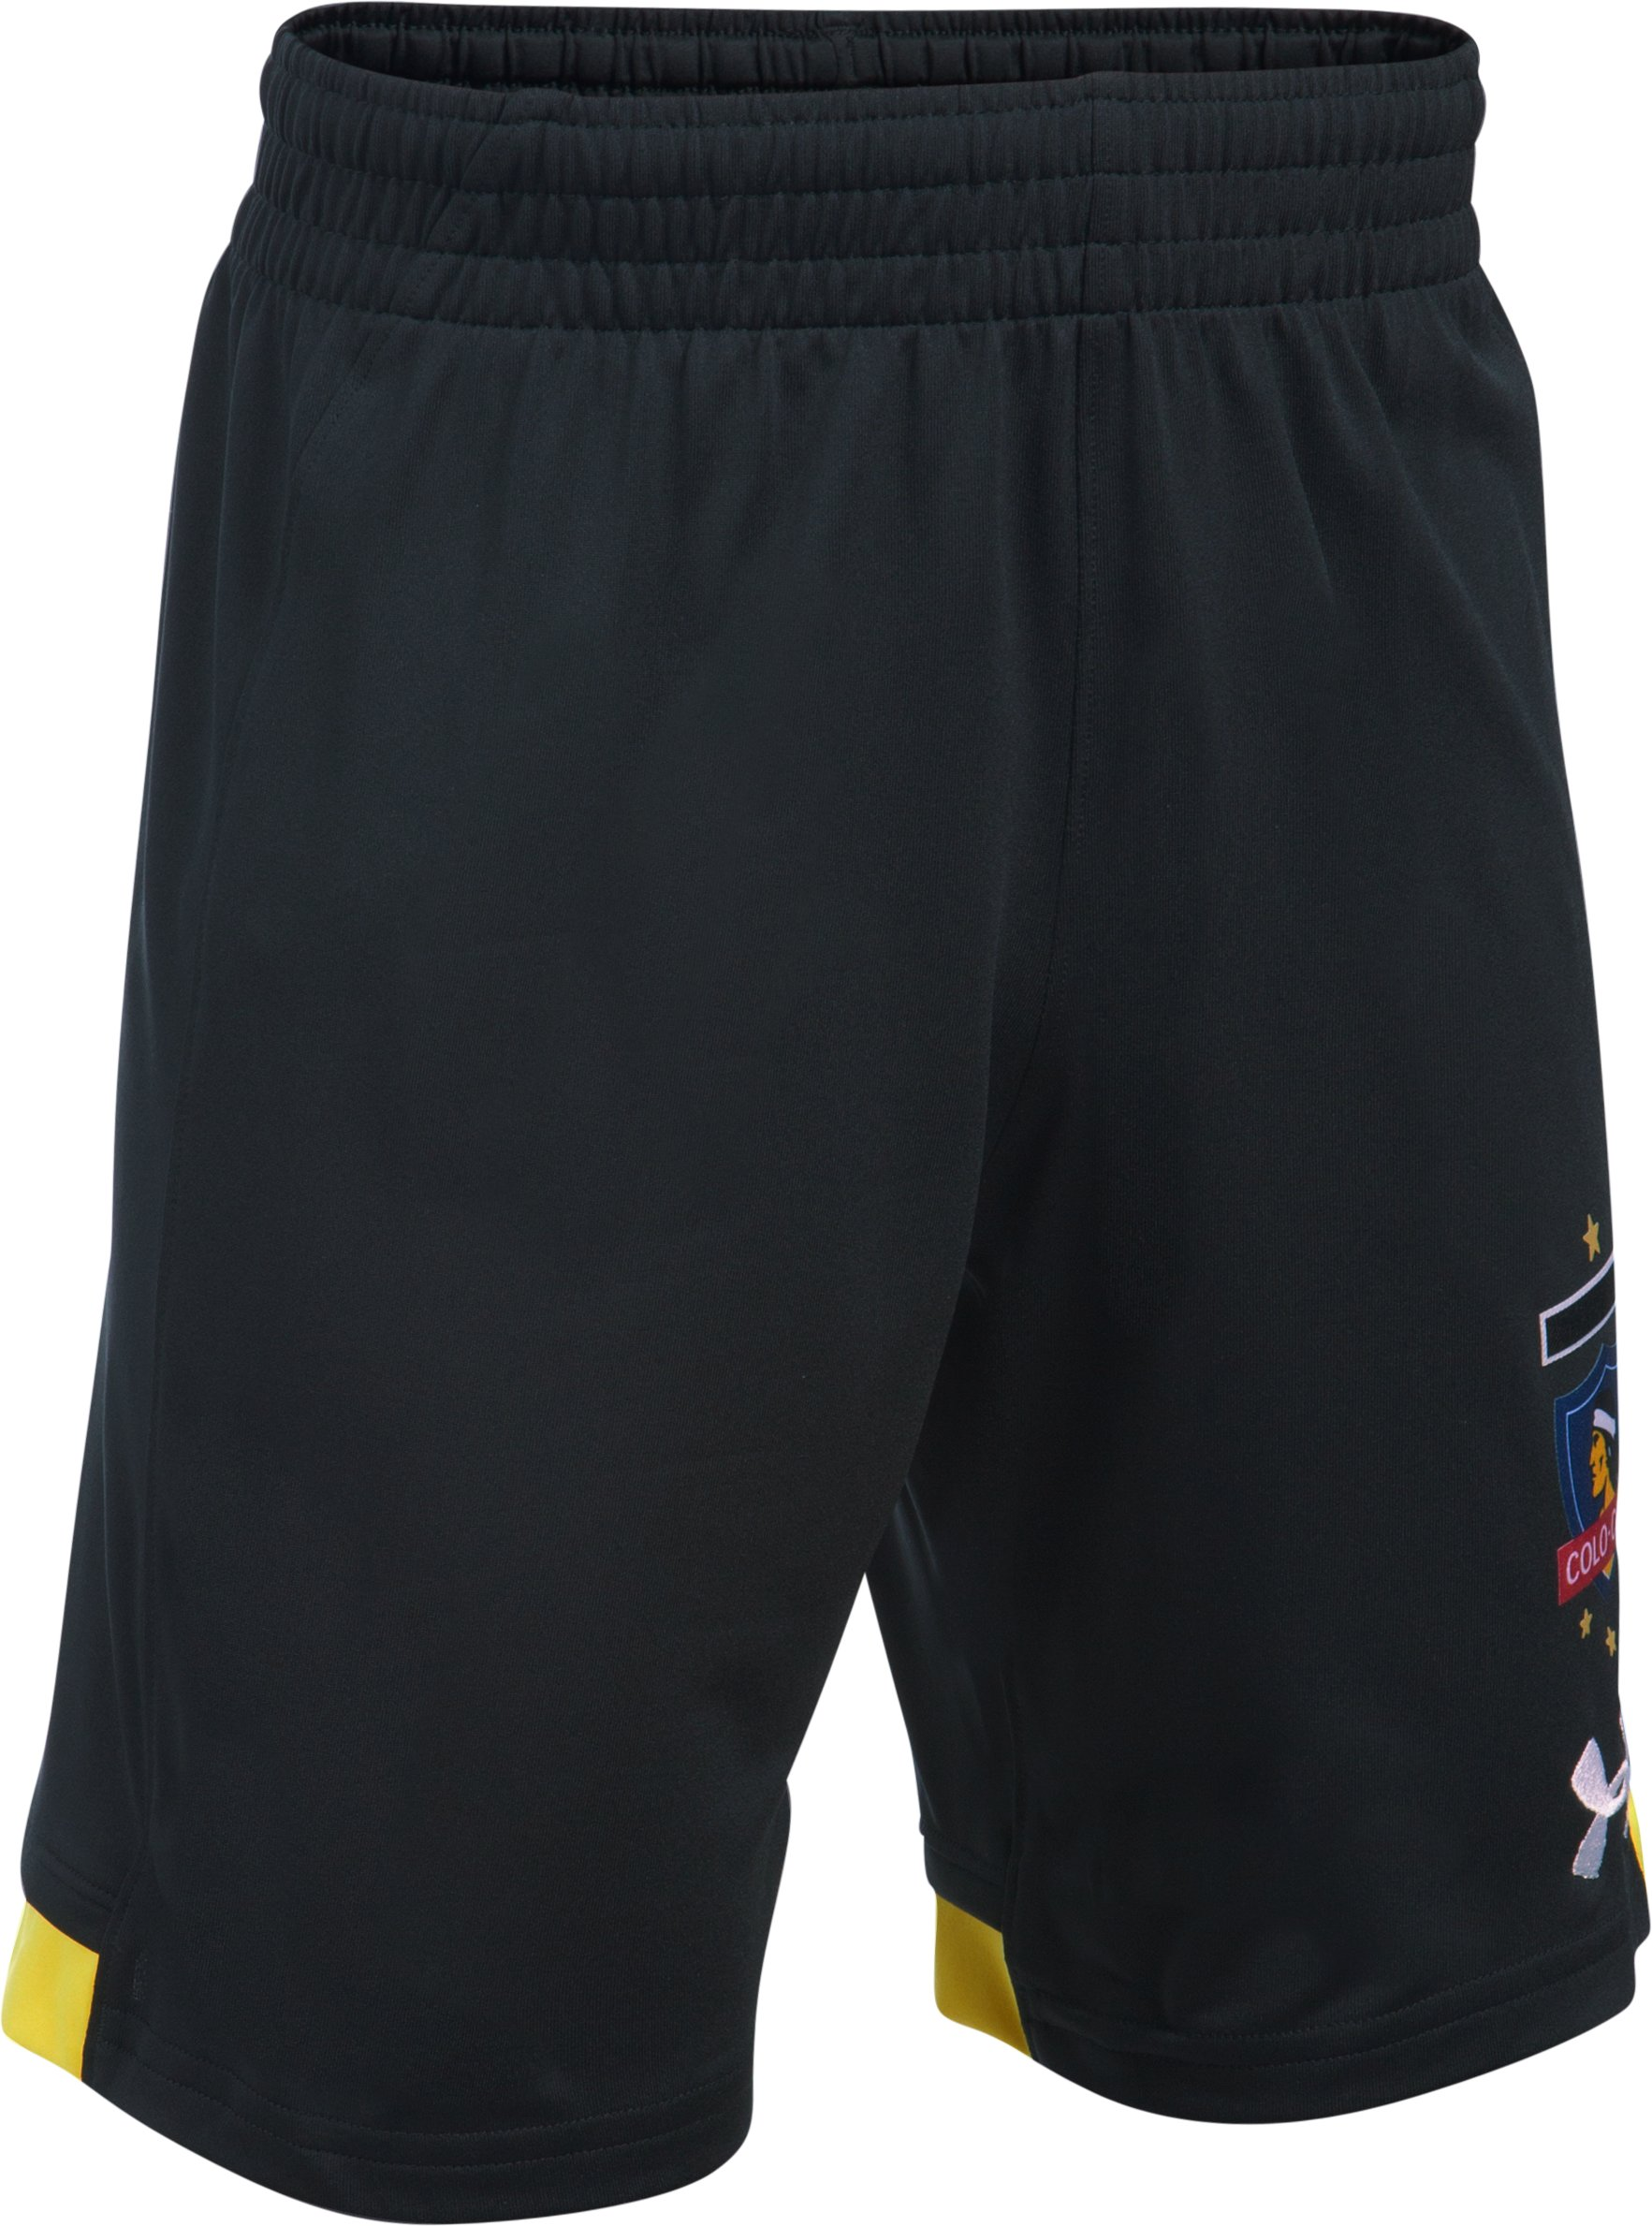 Kids' Colo-Colo Replica Shorts, Black